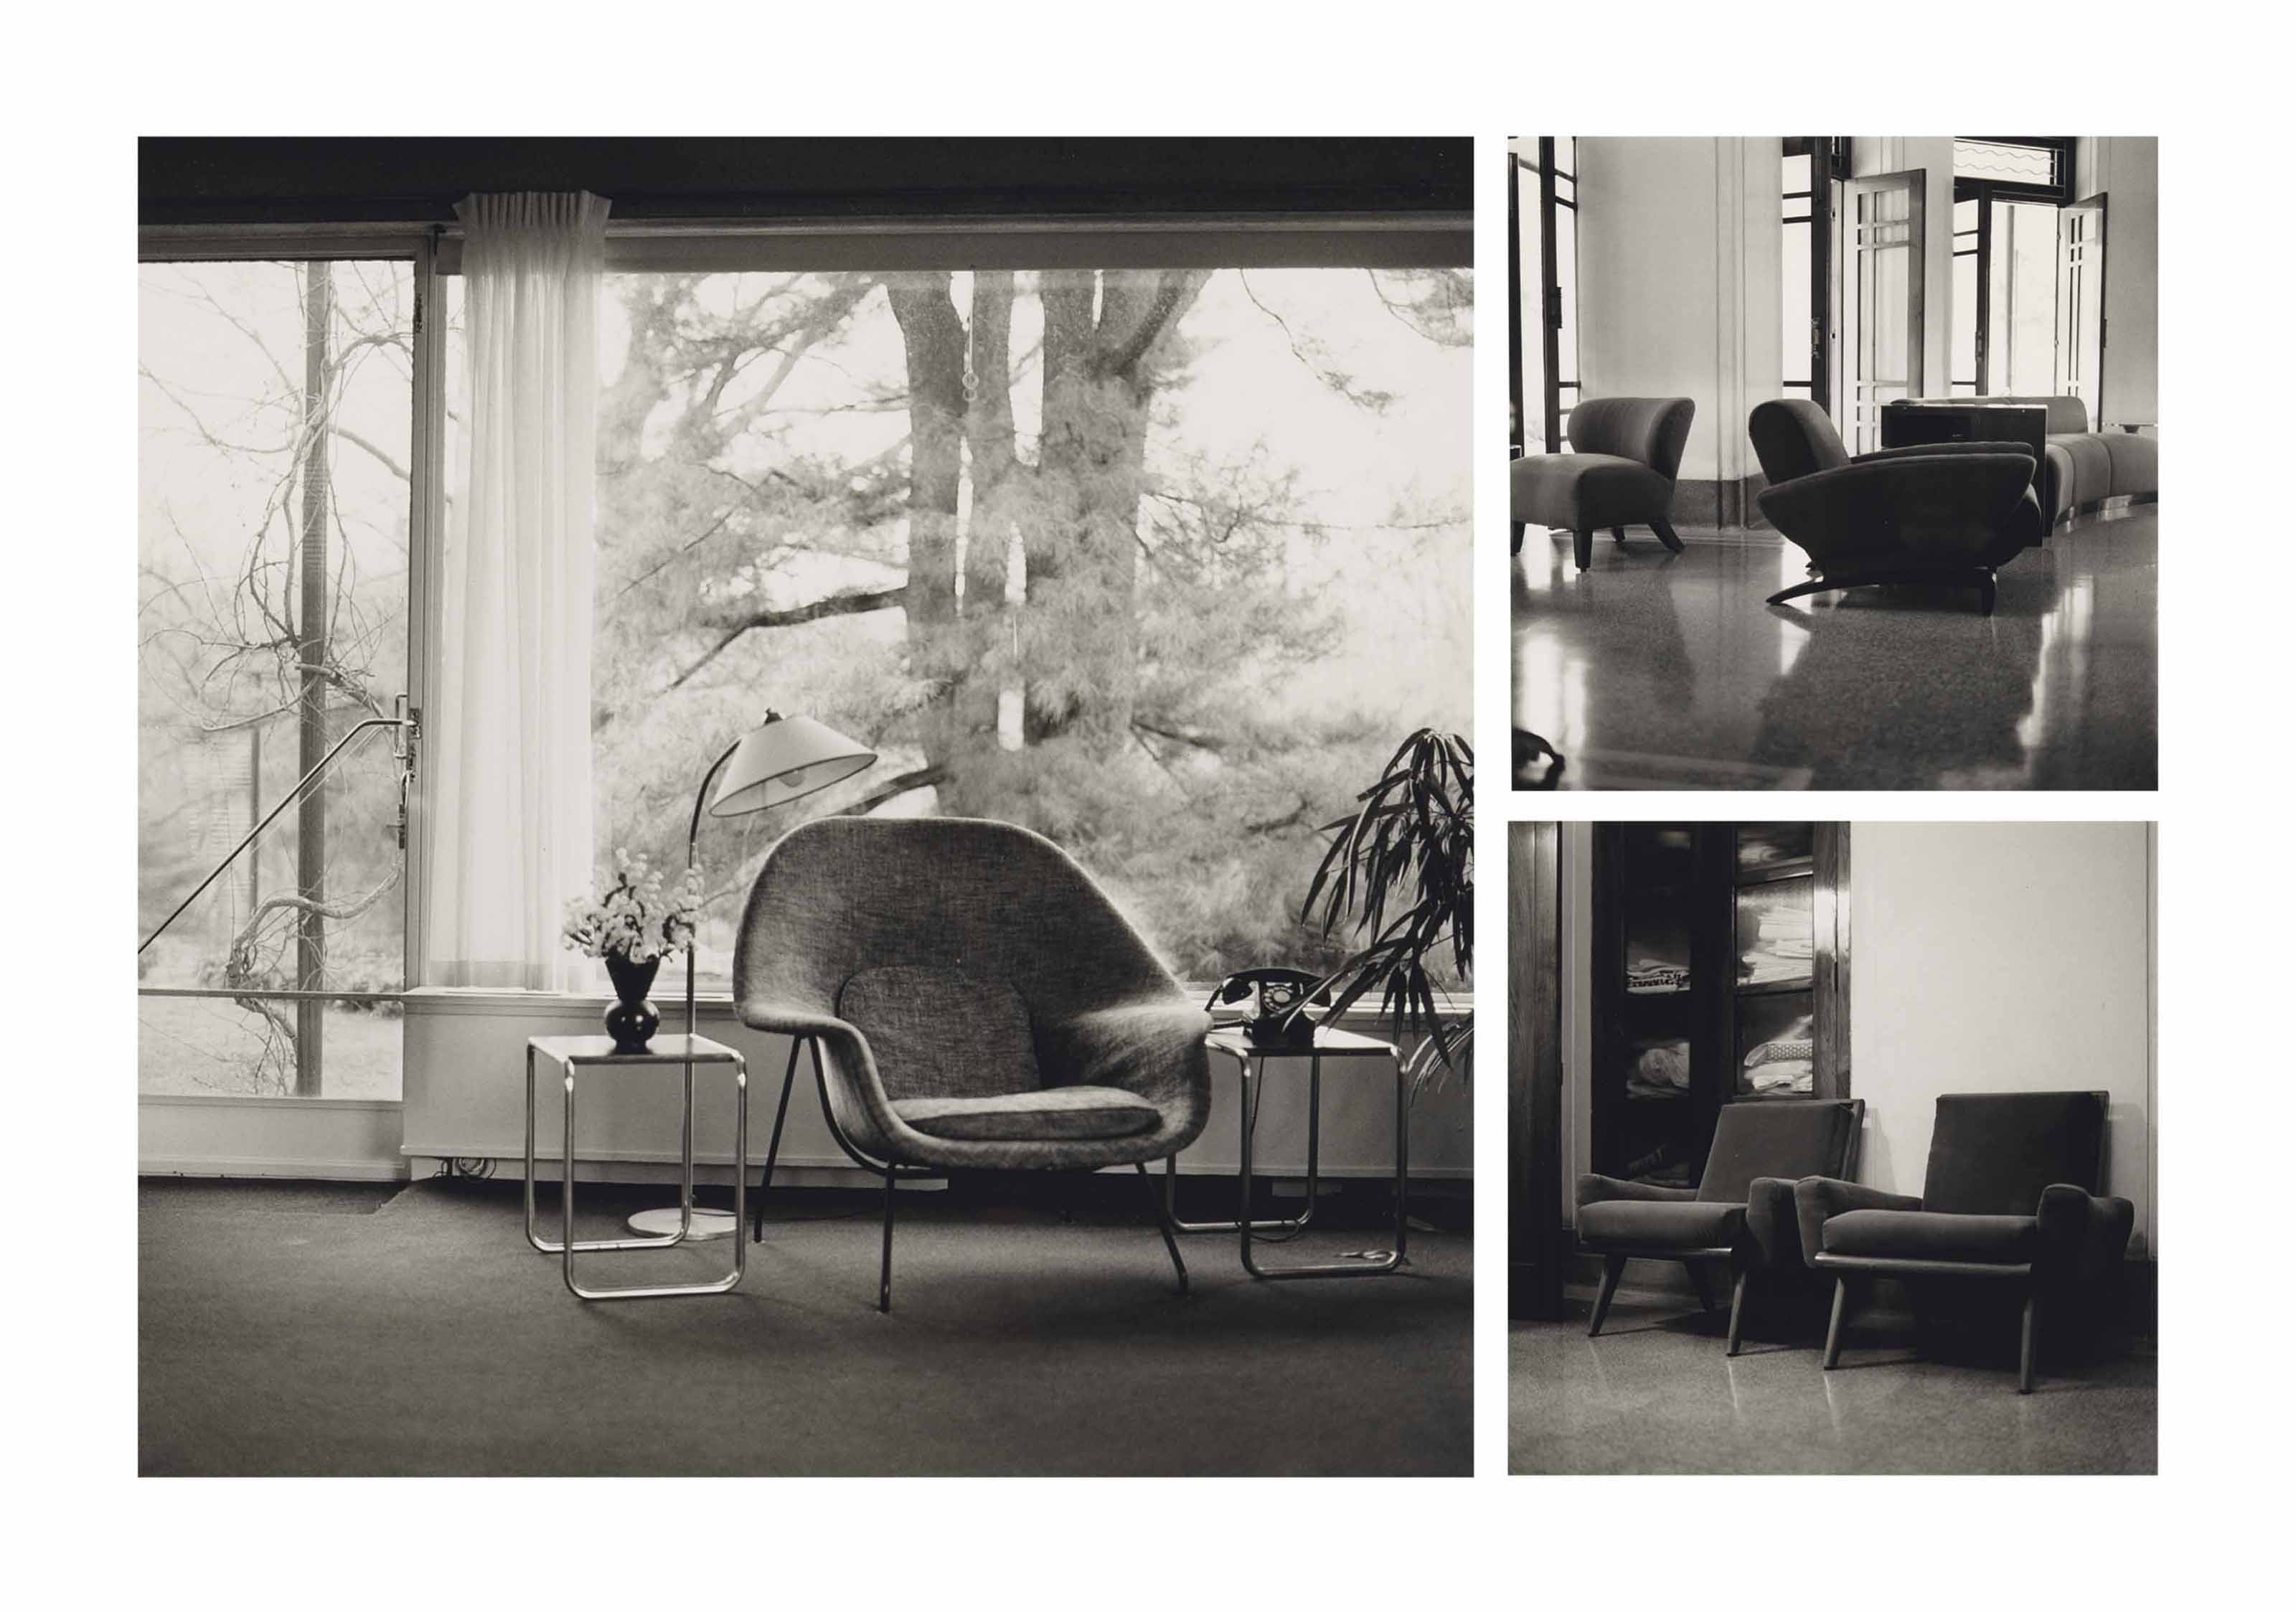 Drawing Room, Coimbatore; Linen Cupboard, Coimbatore; Gropius House Chair, Lincoln